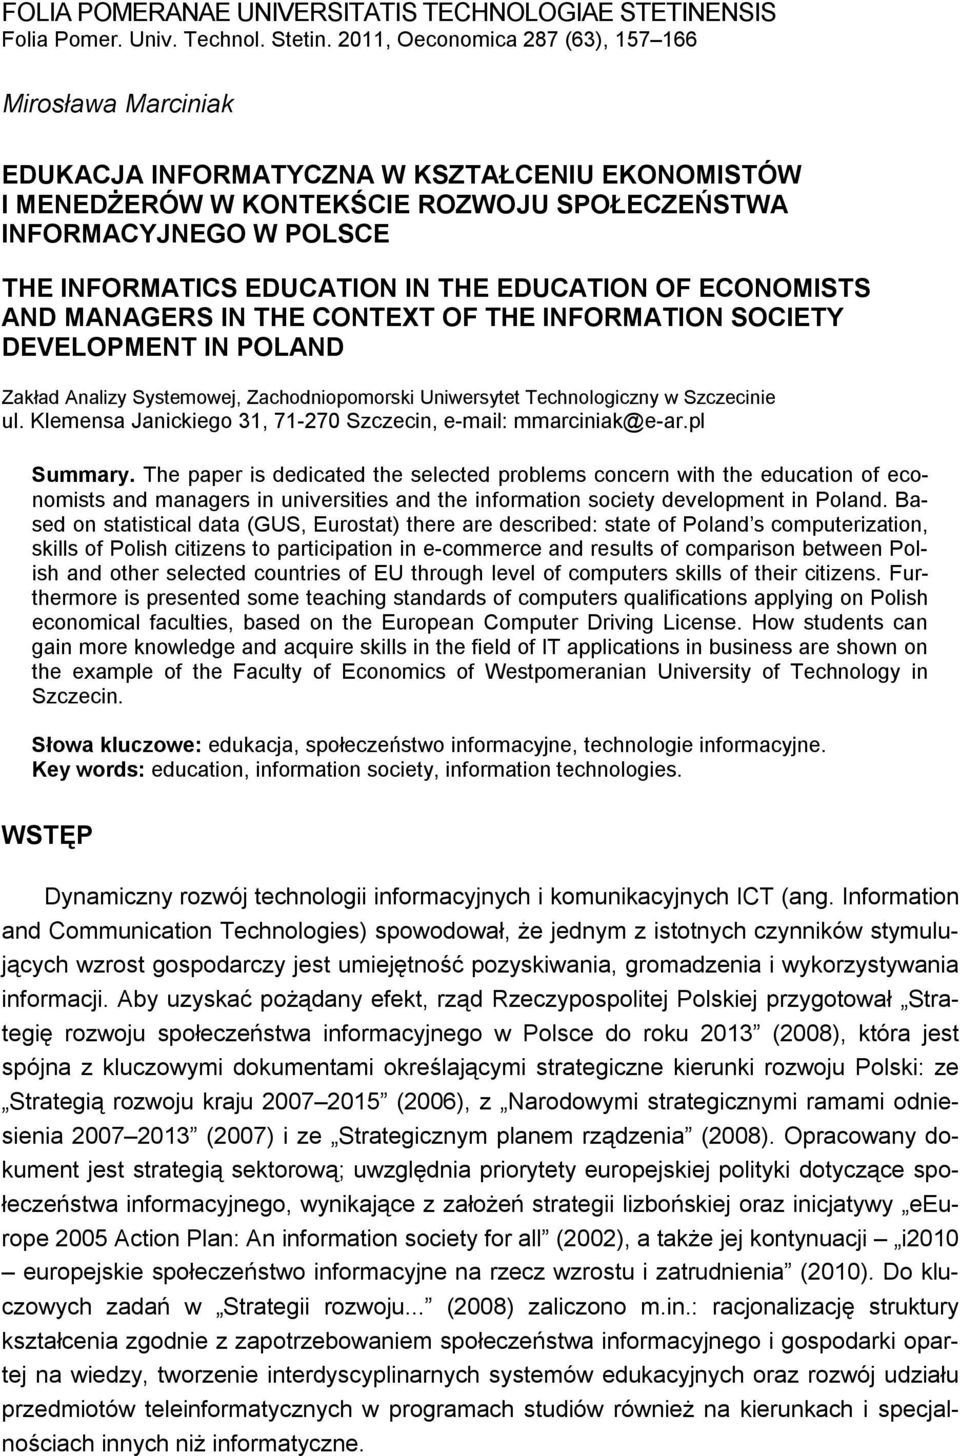 EDUCATION IN THE EDUCATION OF ECONOMISTS AND MANAGERS IN THE CONTEXT OF THE INFORMATION SOCIETY DEVELOPMENT IN POLAND Zakład Analizy Systemowej, Zachodniopomorski Uniwersytet Technologiczny w